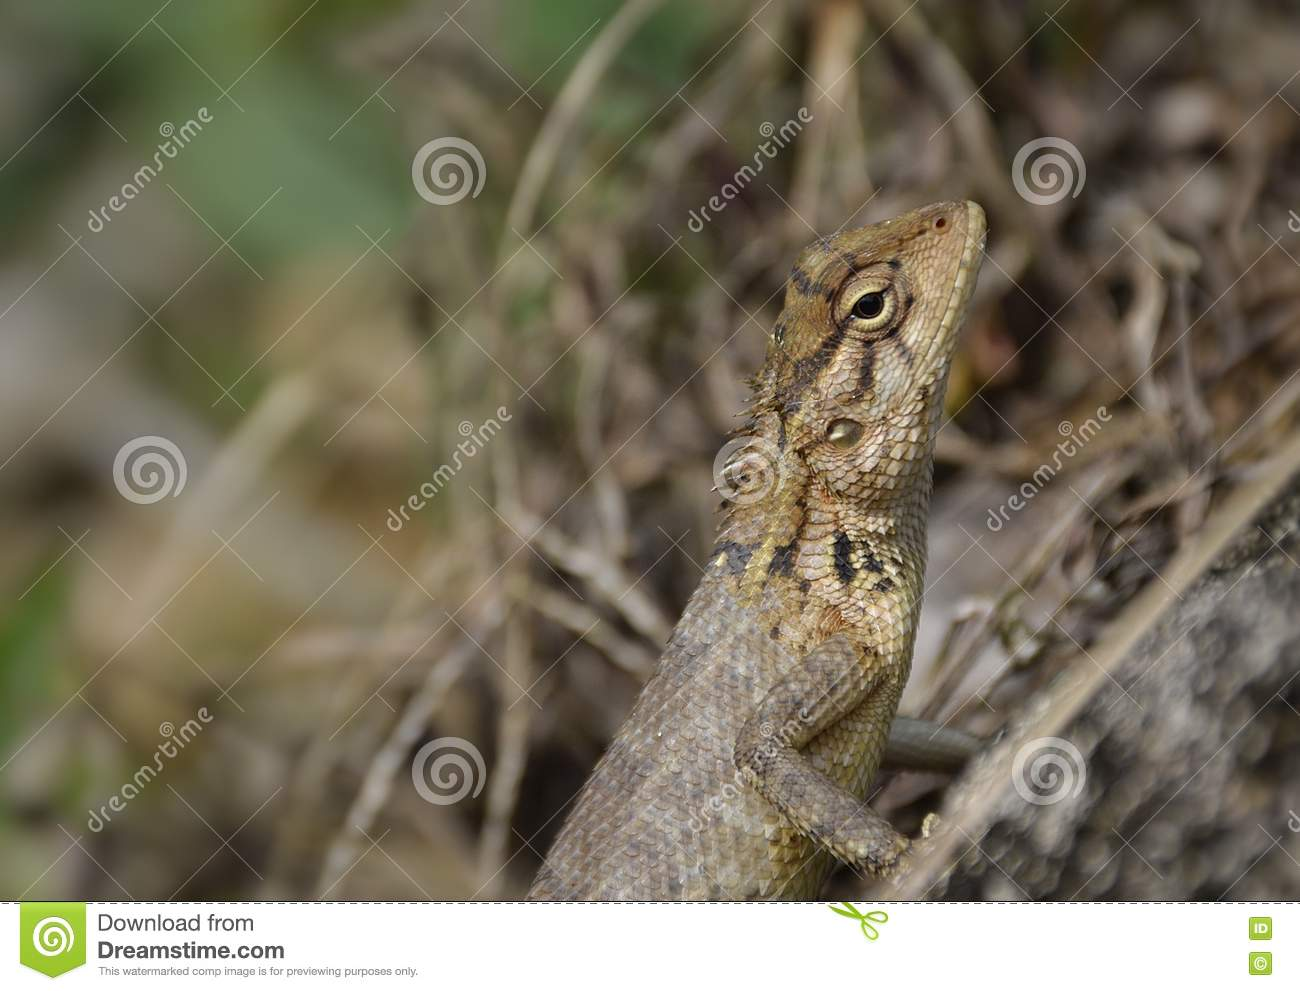 Common Garden Lizard stock photo. Image of quietly, basking - 75734998